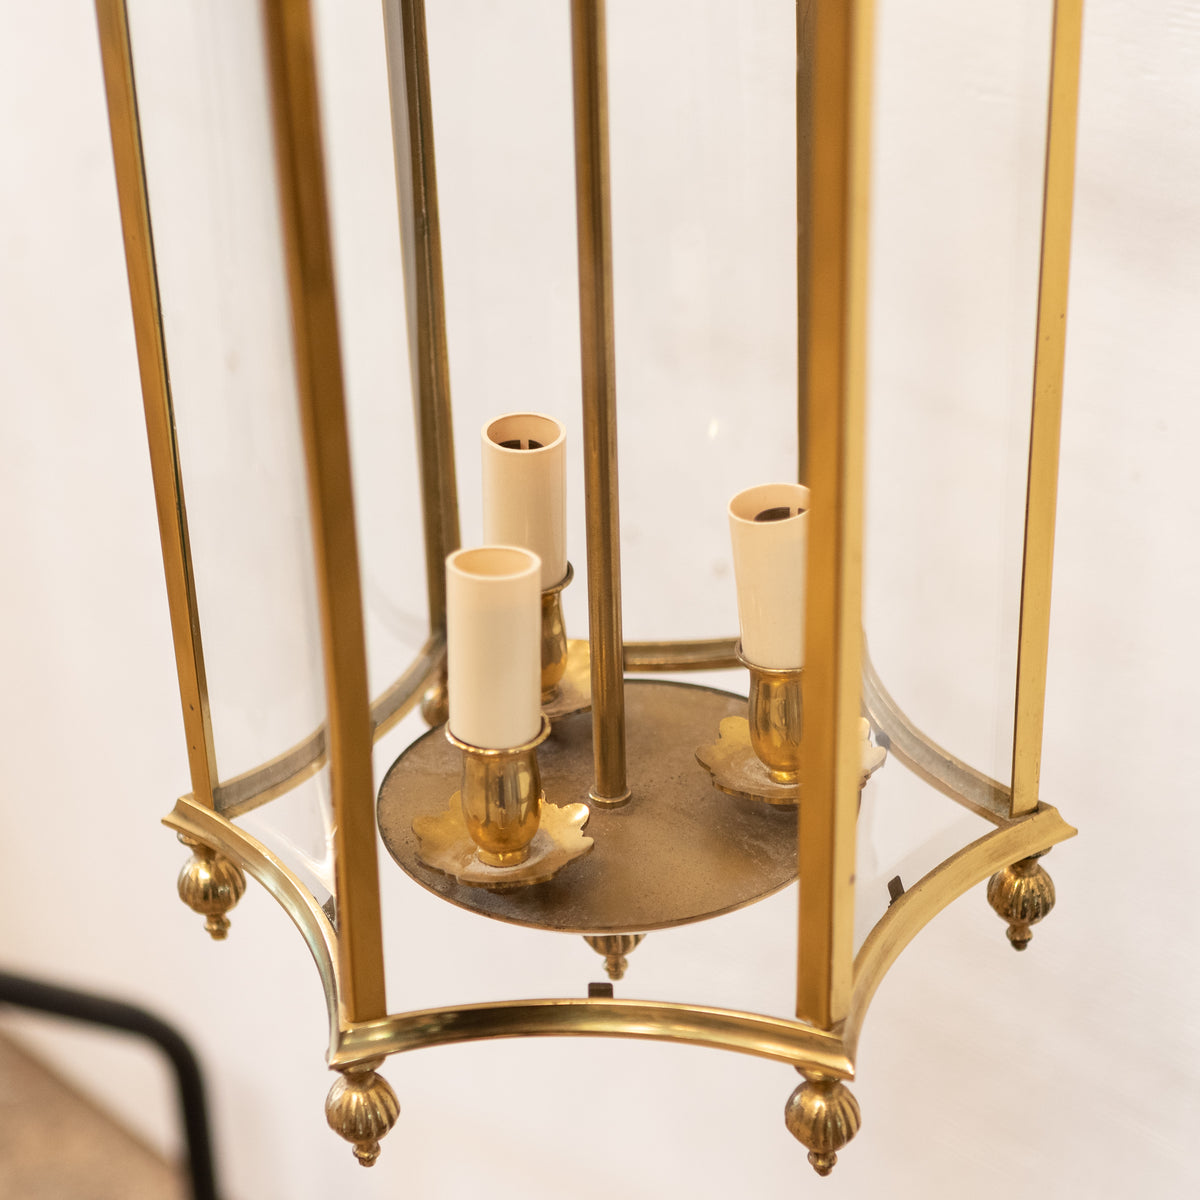 Reclaimed Brass Lantern | The Architectural Forum